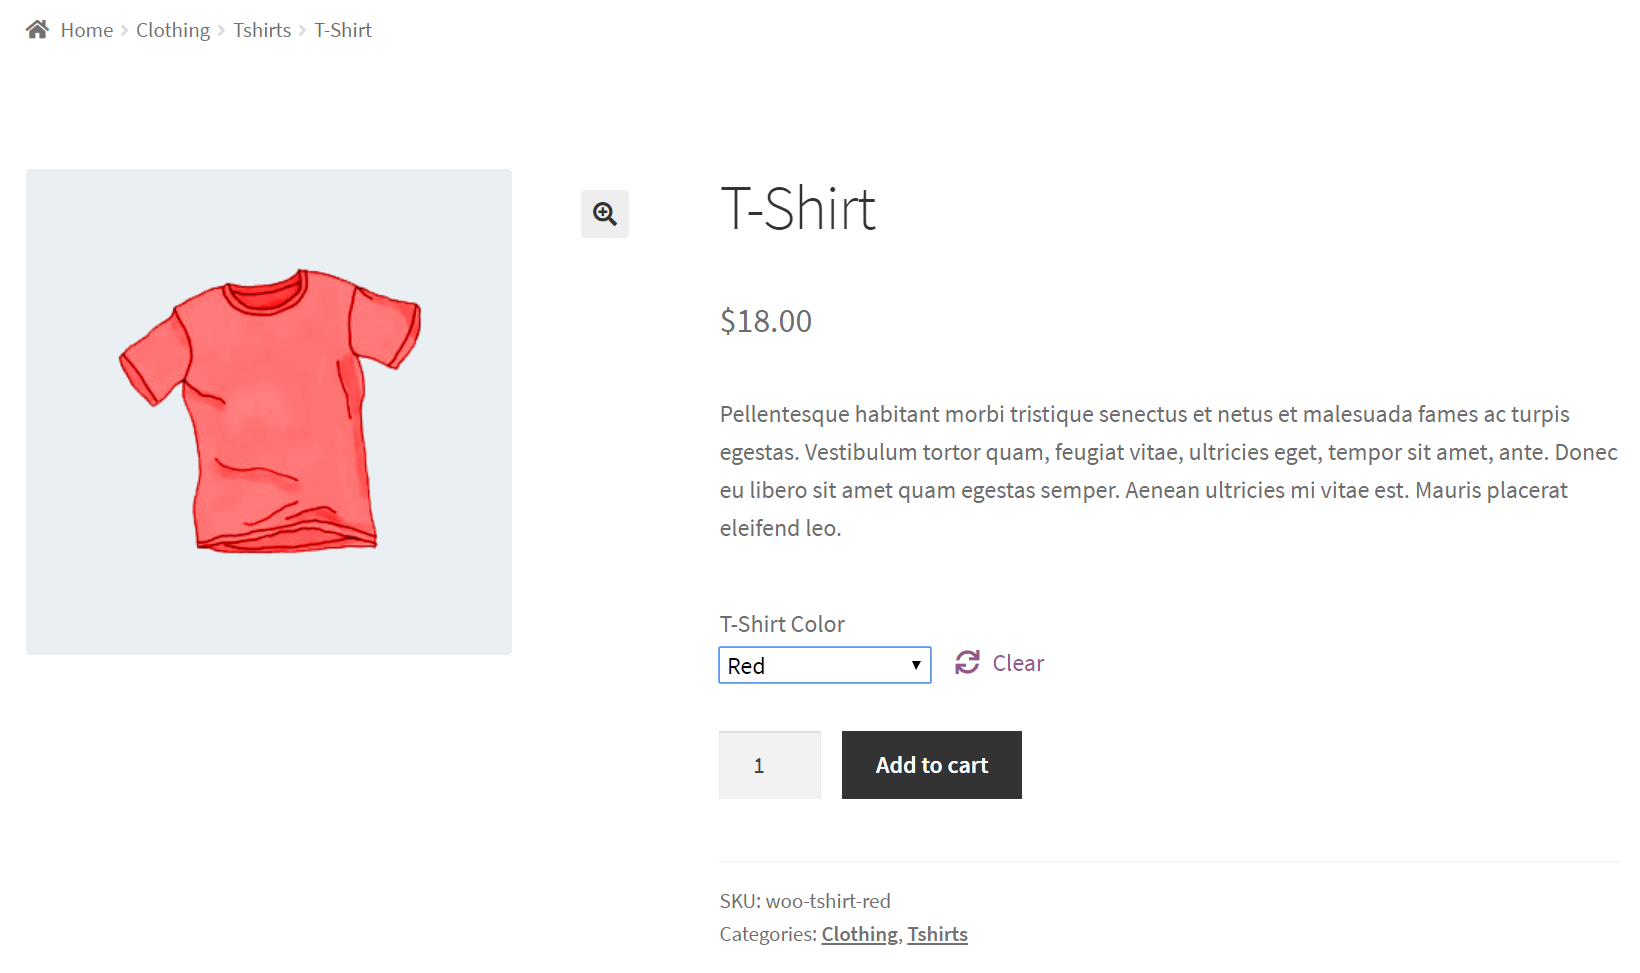 Front-end preview of WooCommerce product variation